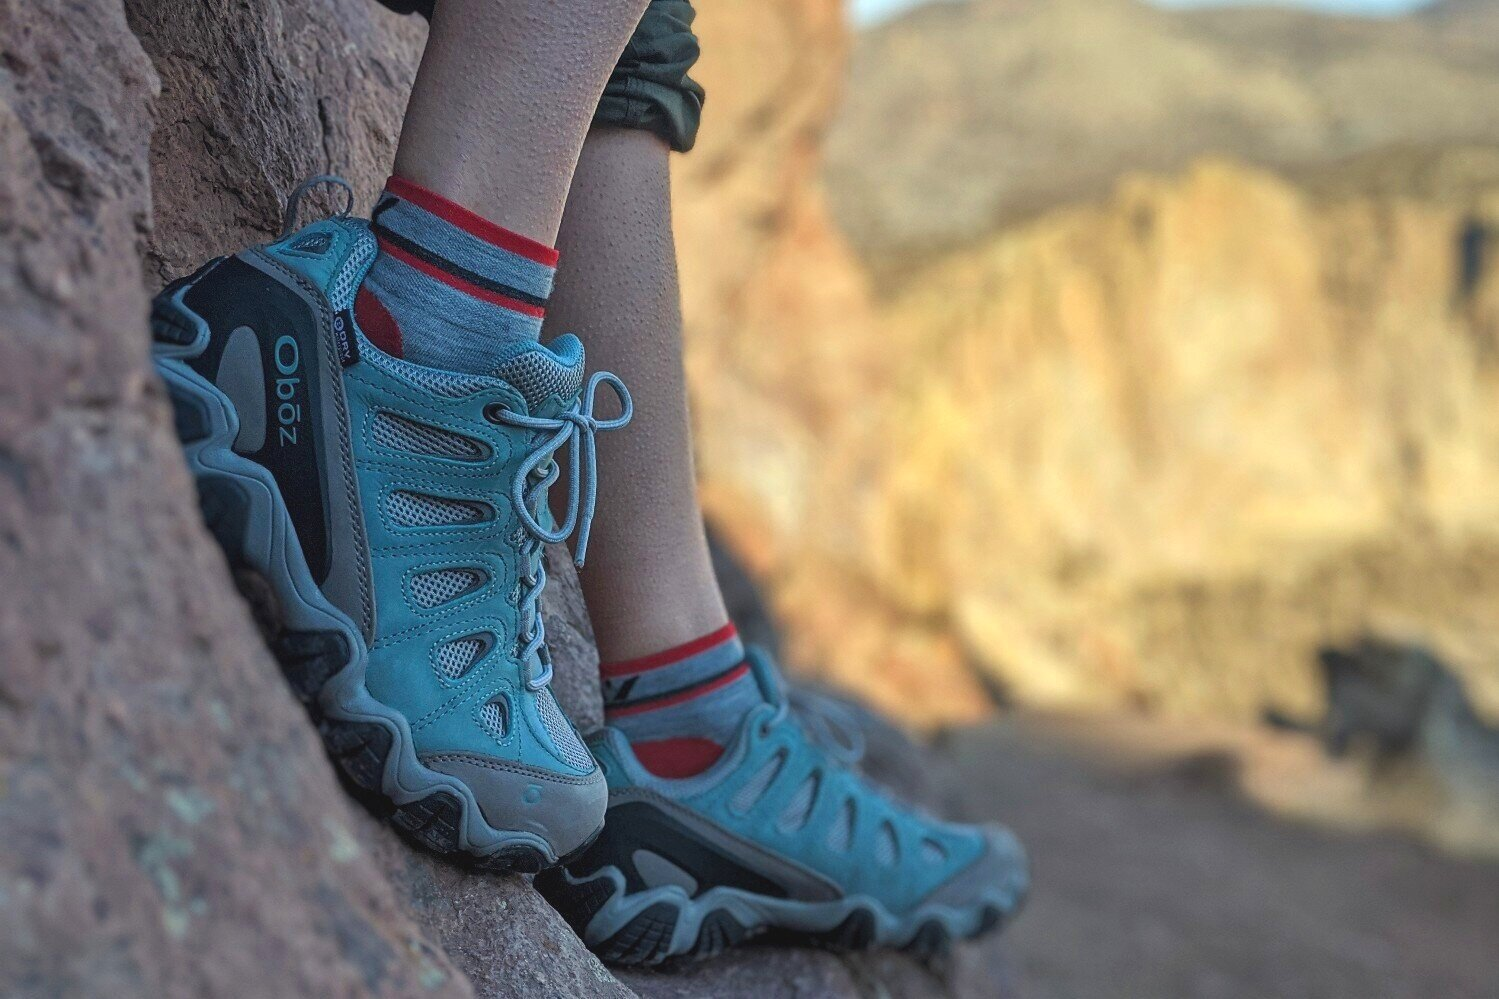 salomon outline low gtx hiking shoes - women's high quality